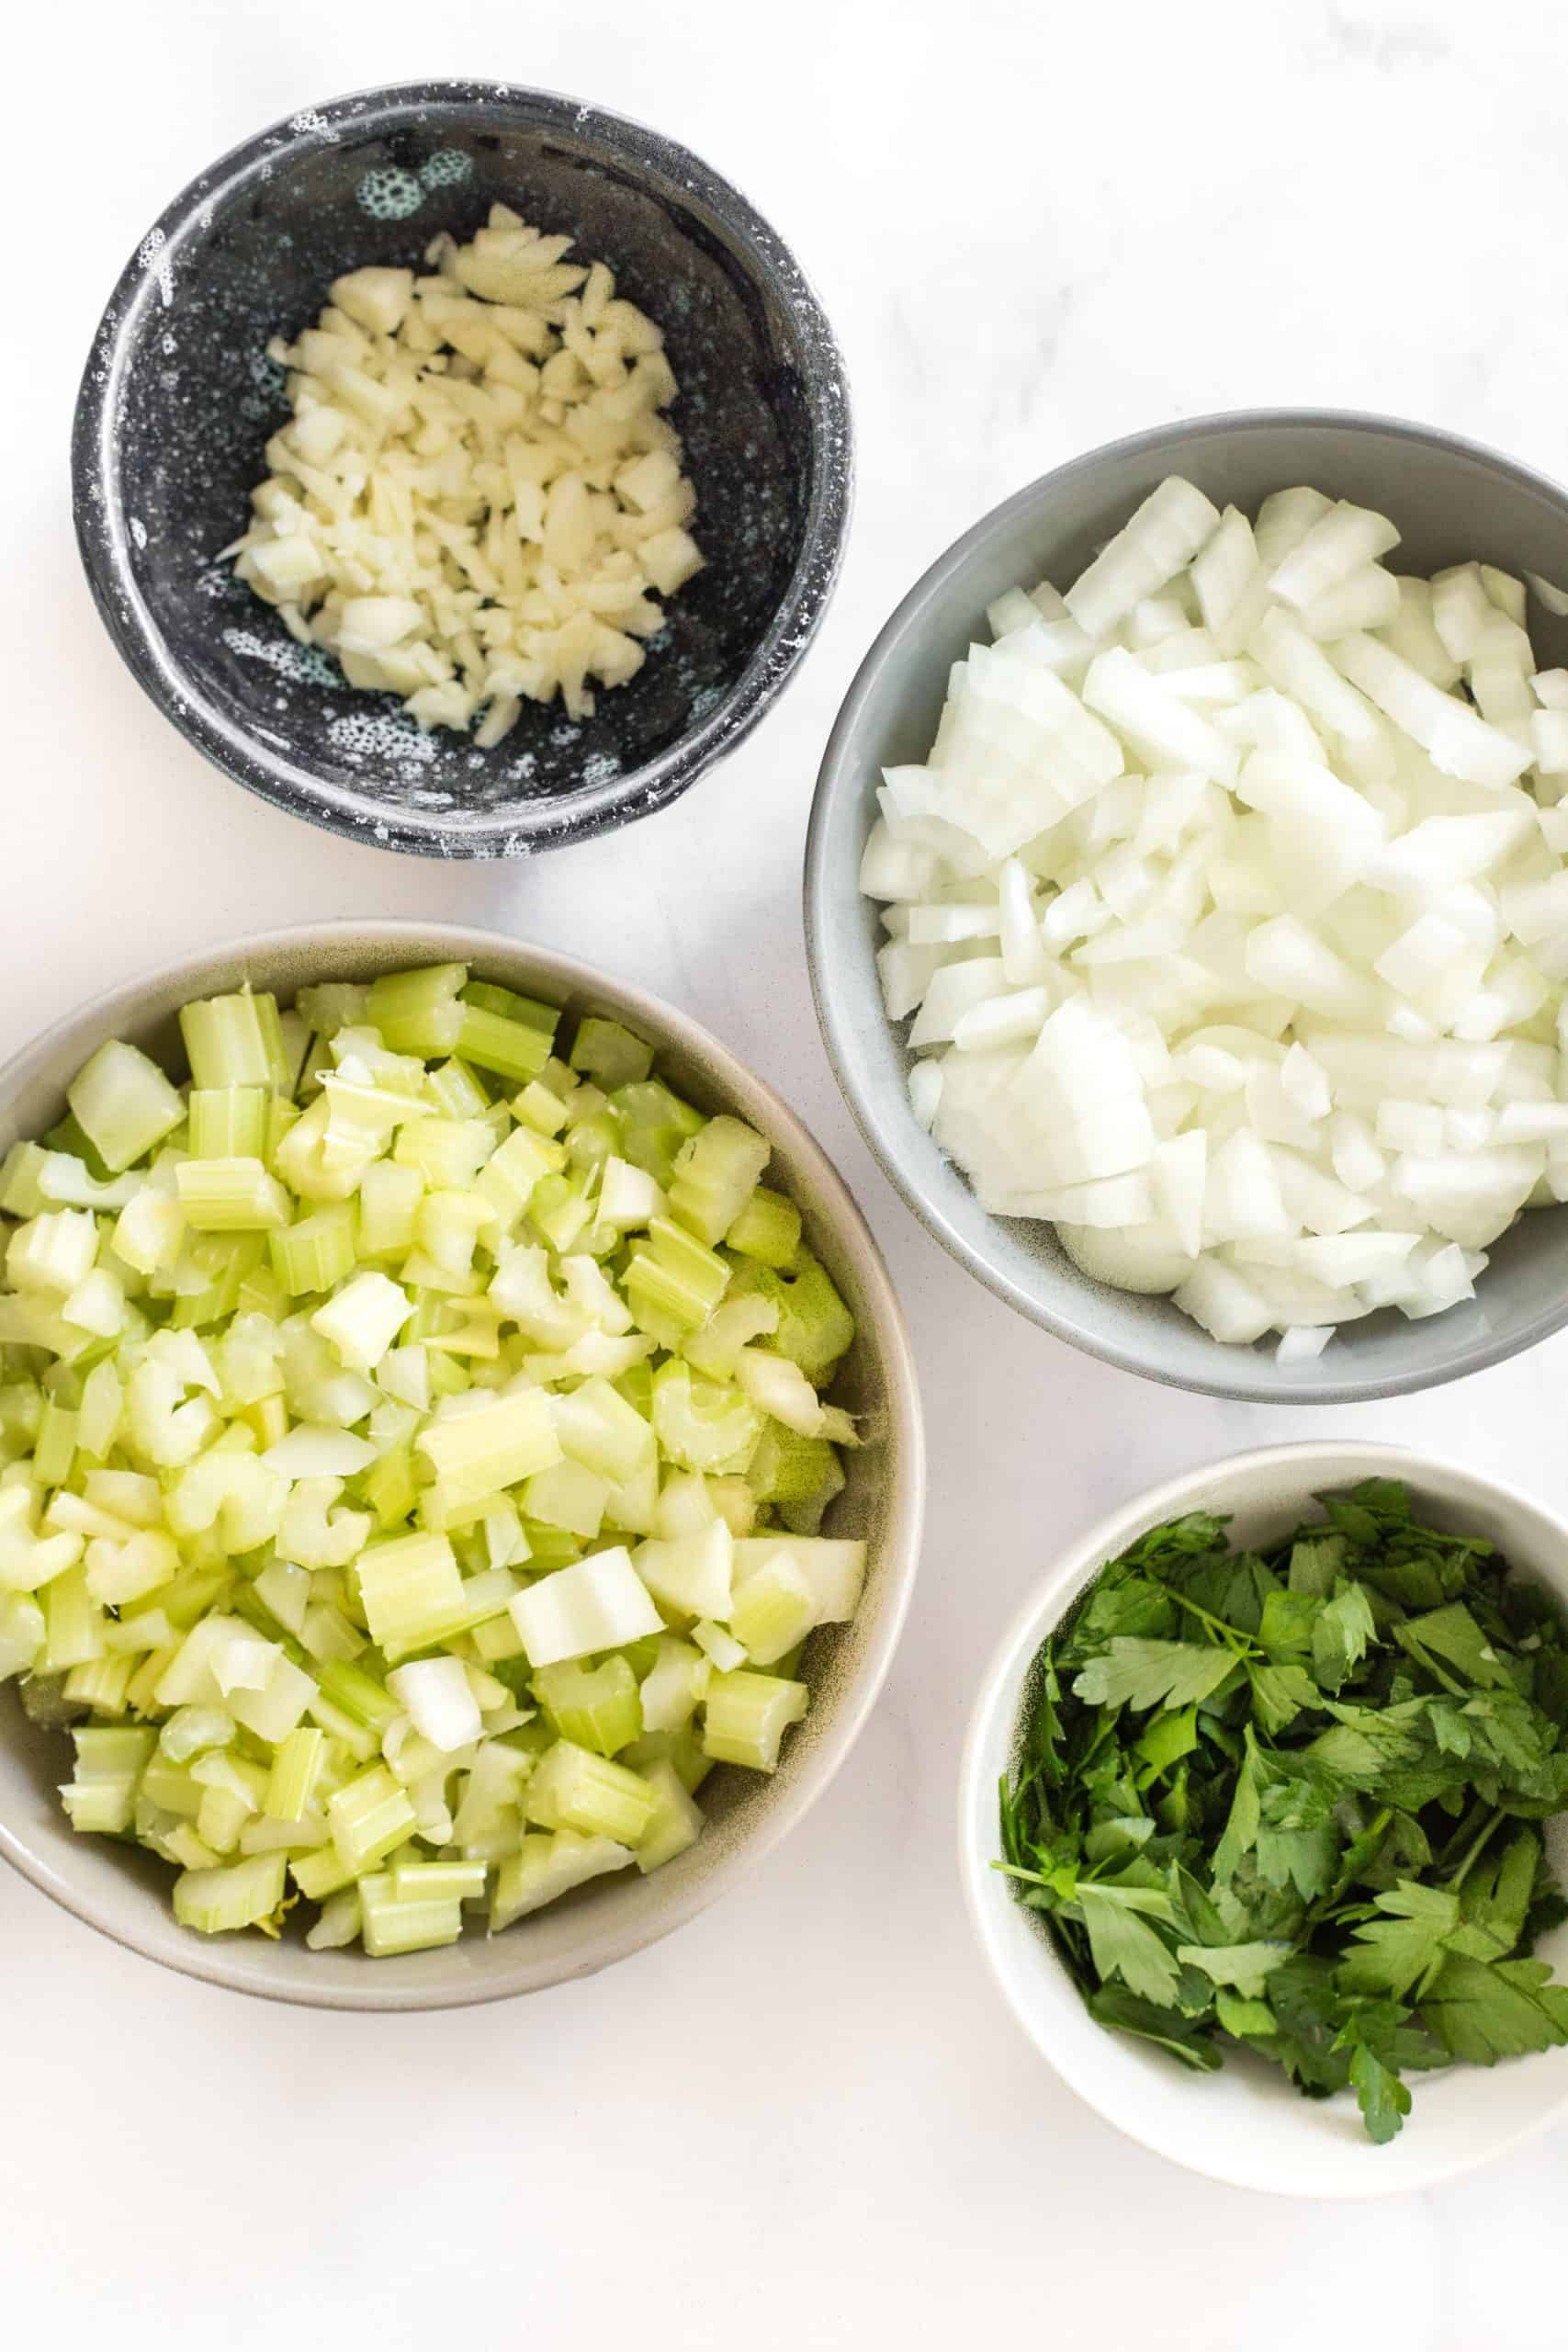 Chopped vegetables in bowls on a white marble board.